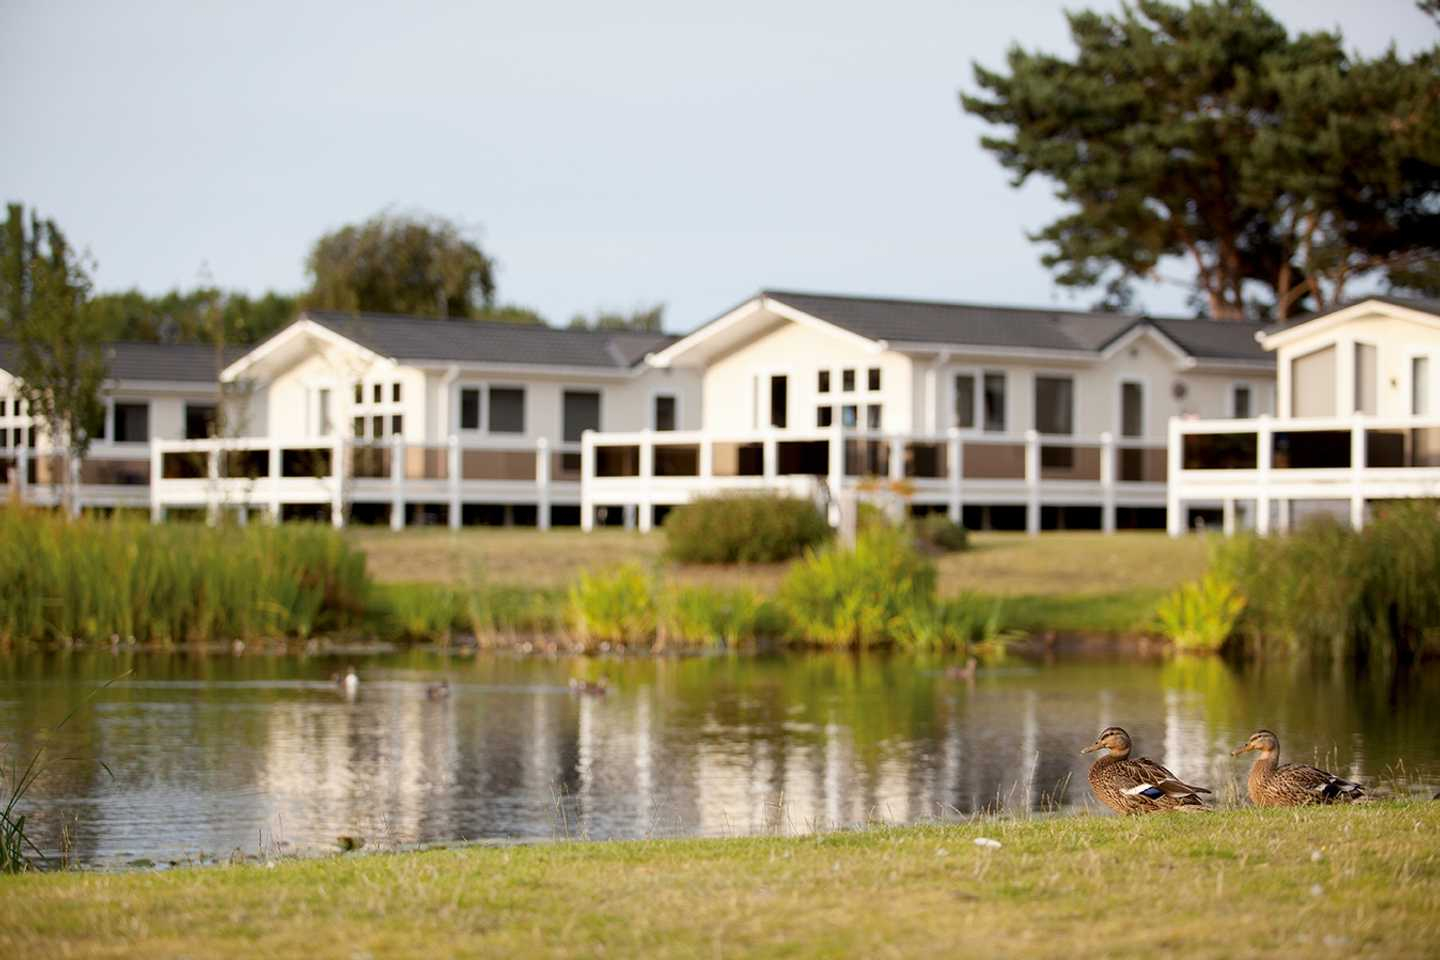 A view of some of our caravans with verandas backing onto the lake